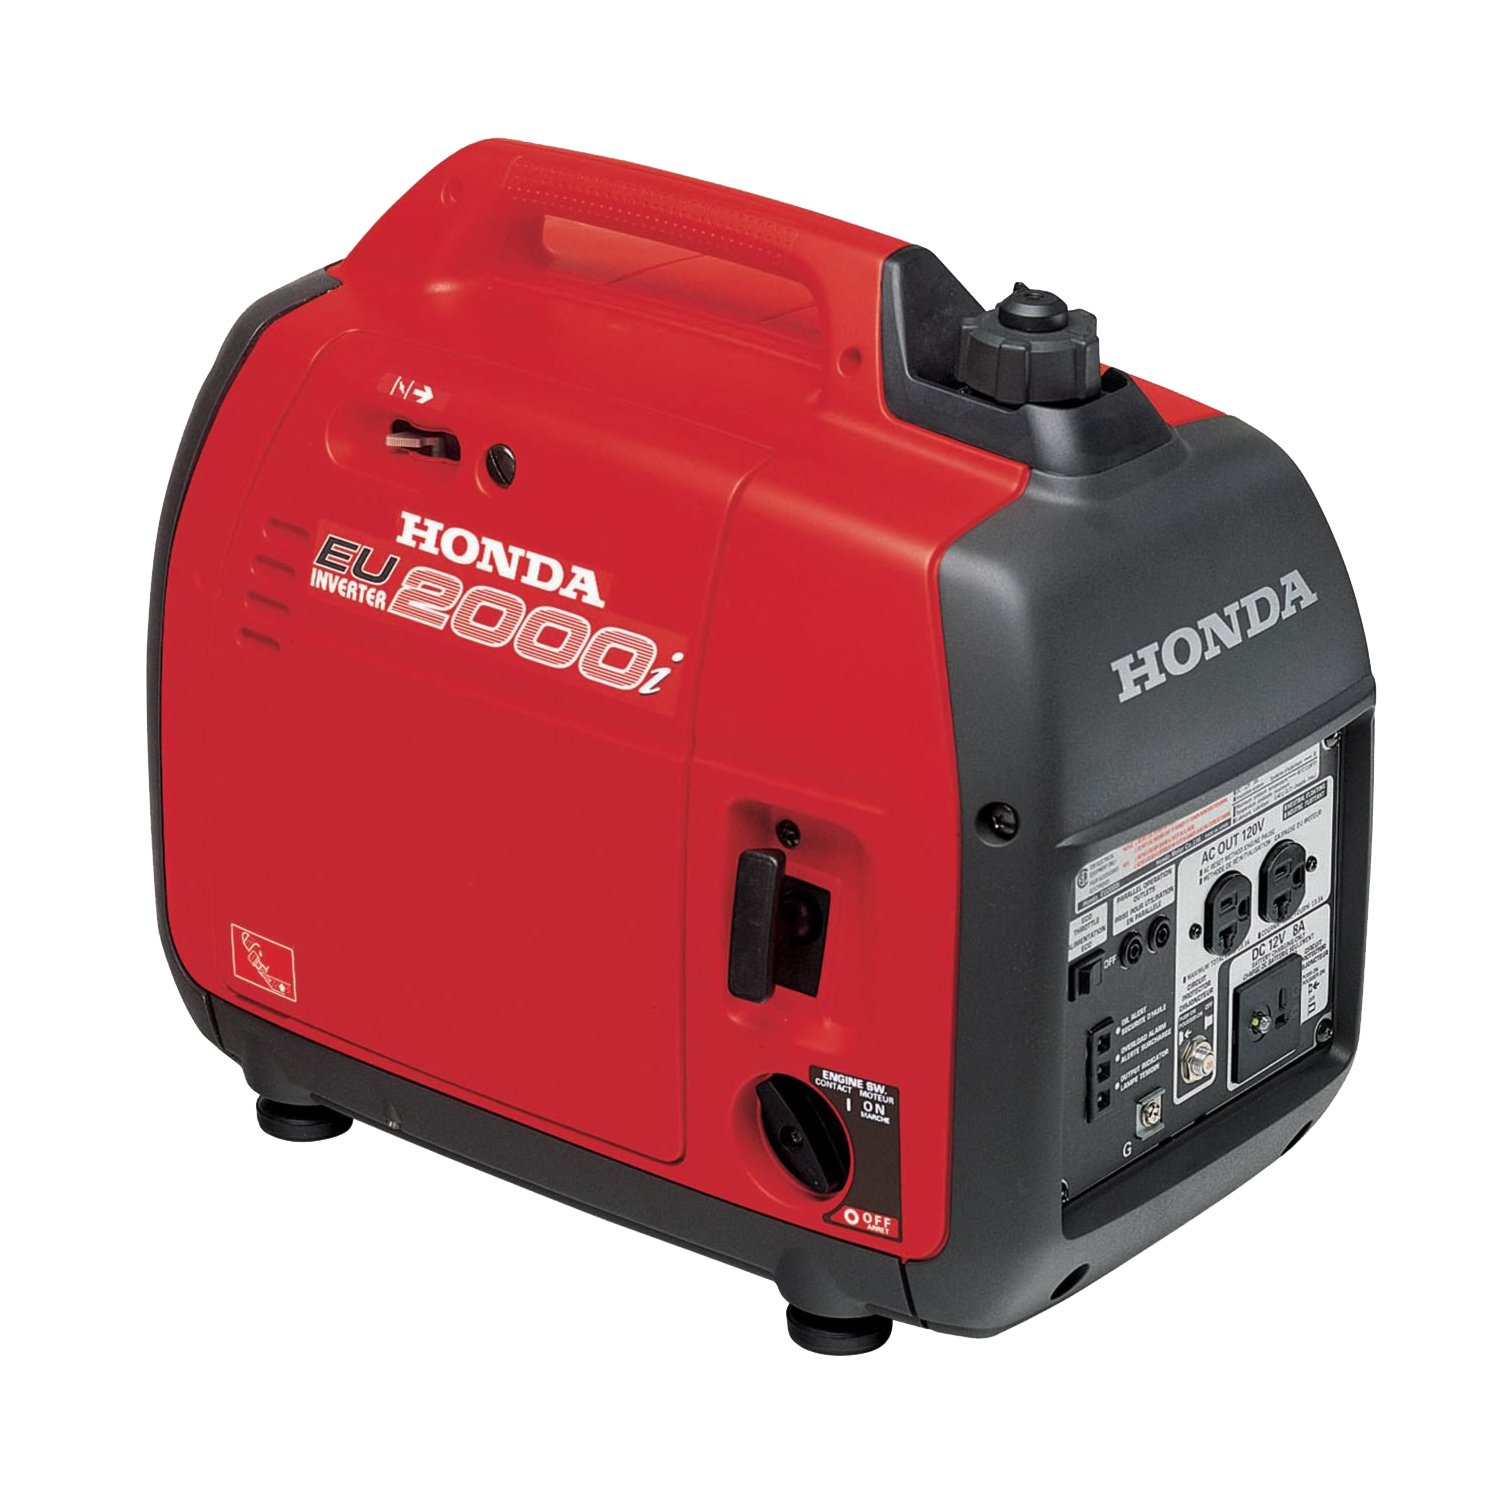 Amazon Generators Generators & Portable Power Patio Lawn